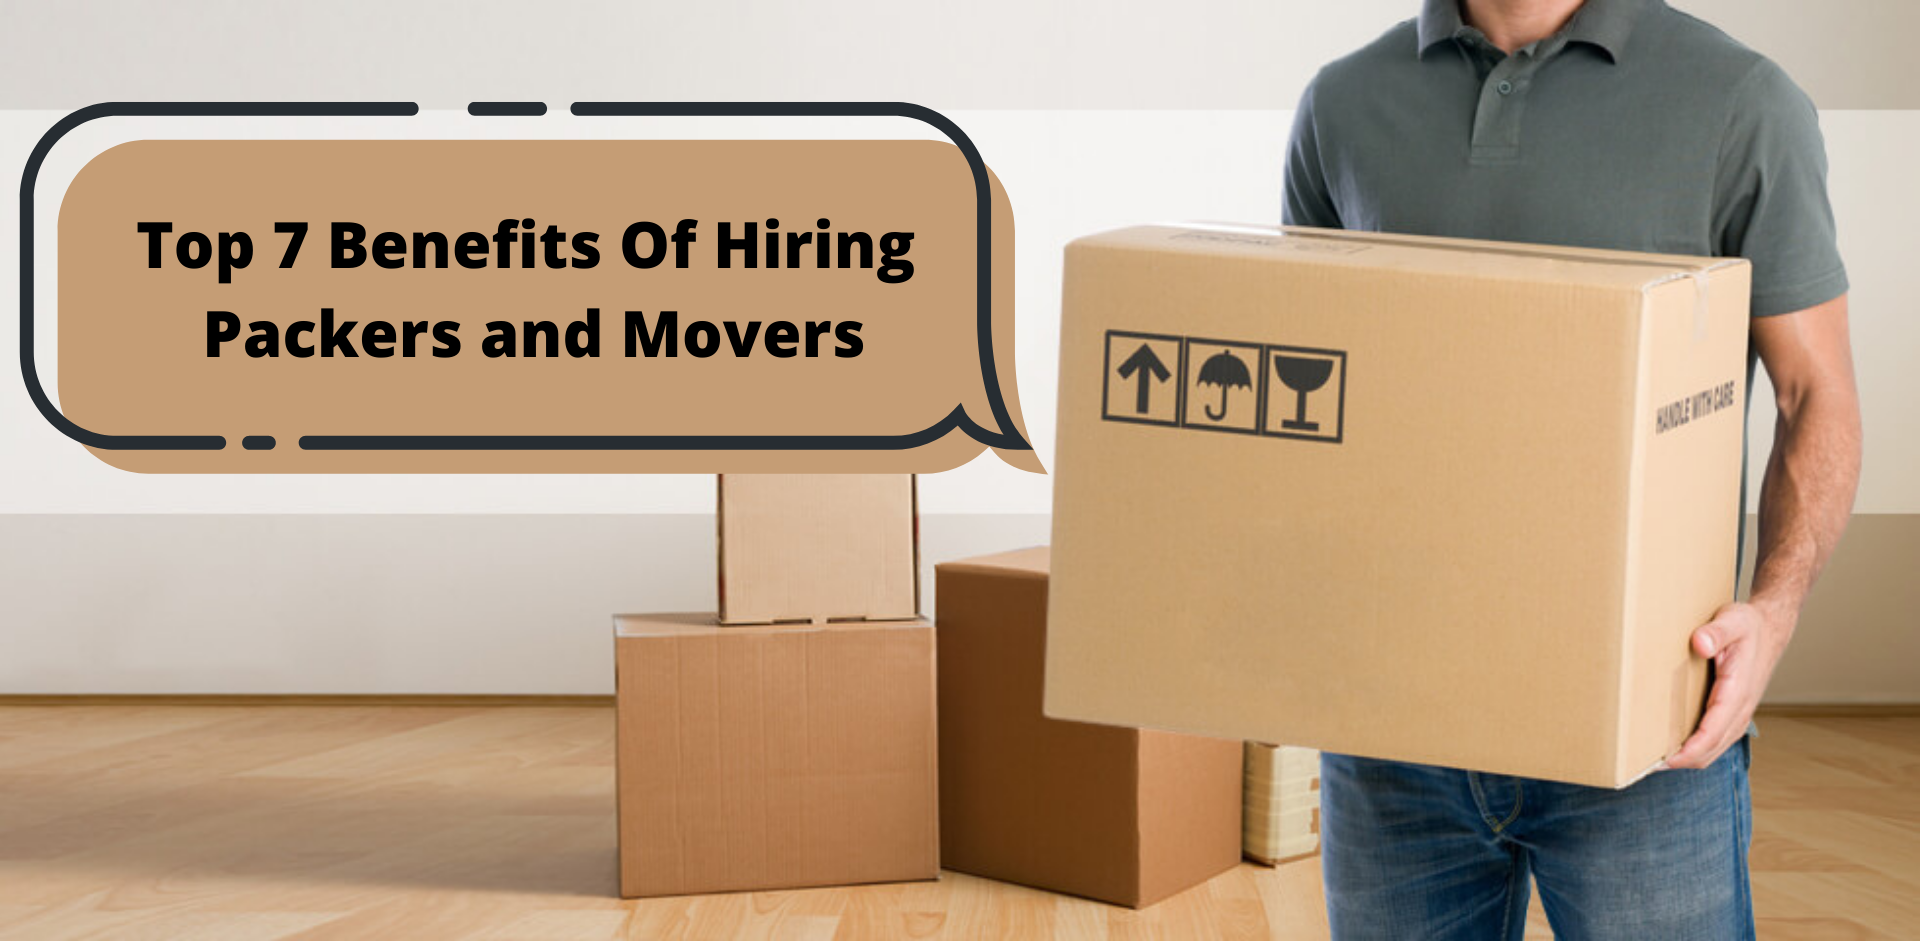 Top 7 Benefits Of Hiring Packers and Movers